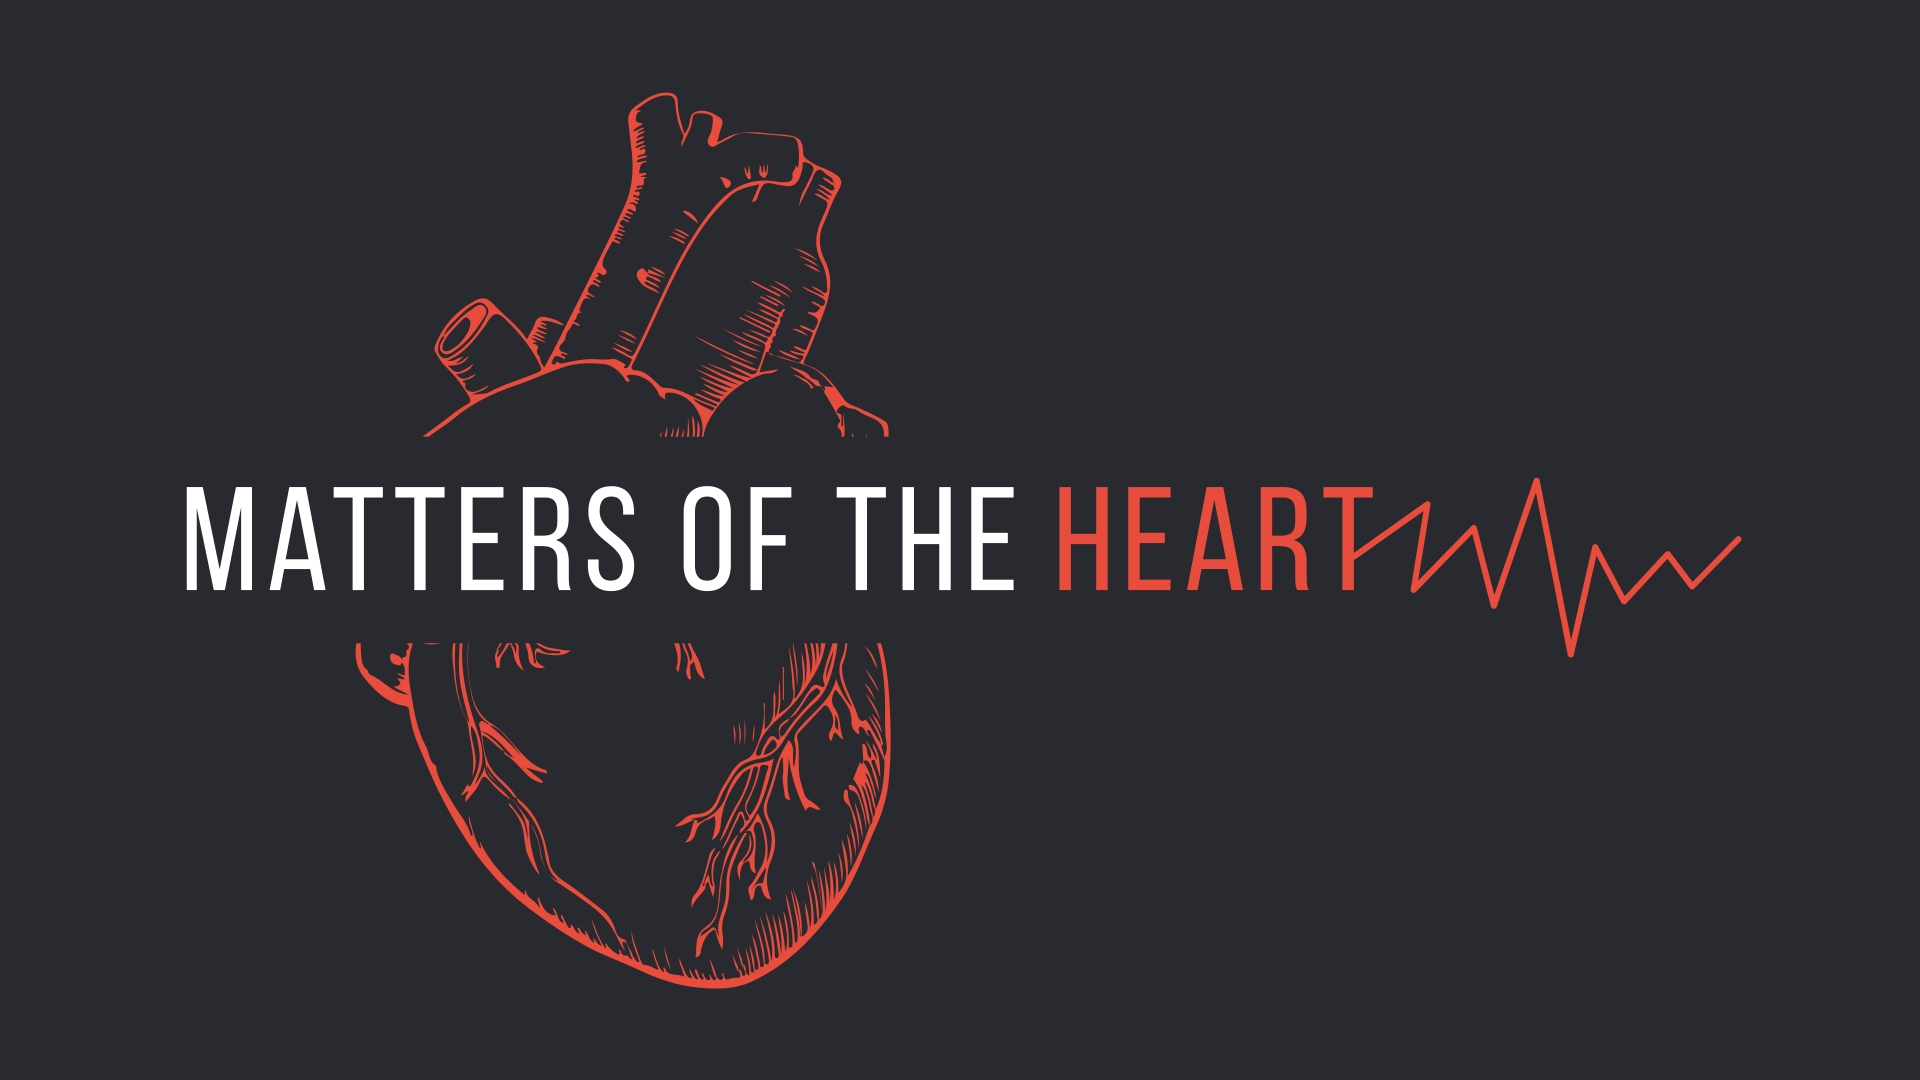 71862_Matters_of_the_heart.jpg